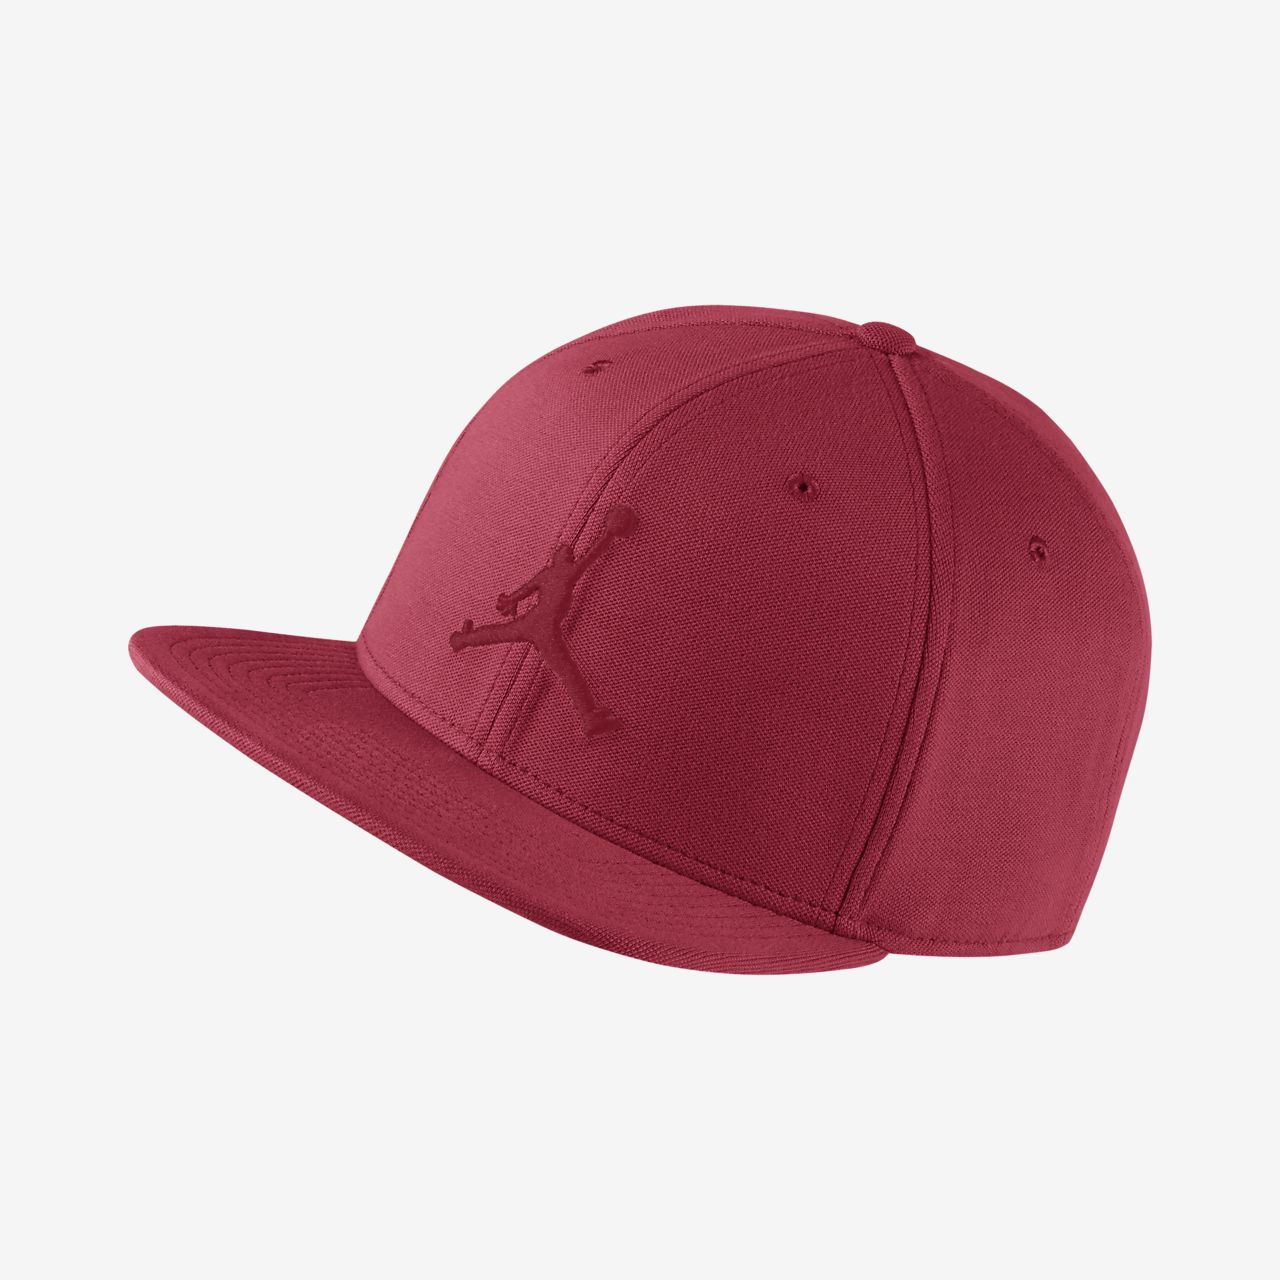 6905bce86943 Jordan Jumpman Snapback Adjustable Hat. Nike.com GB